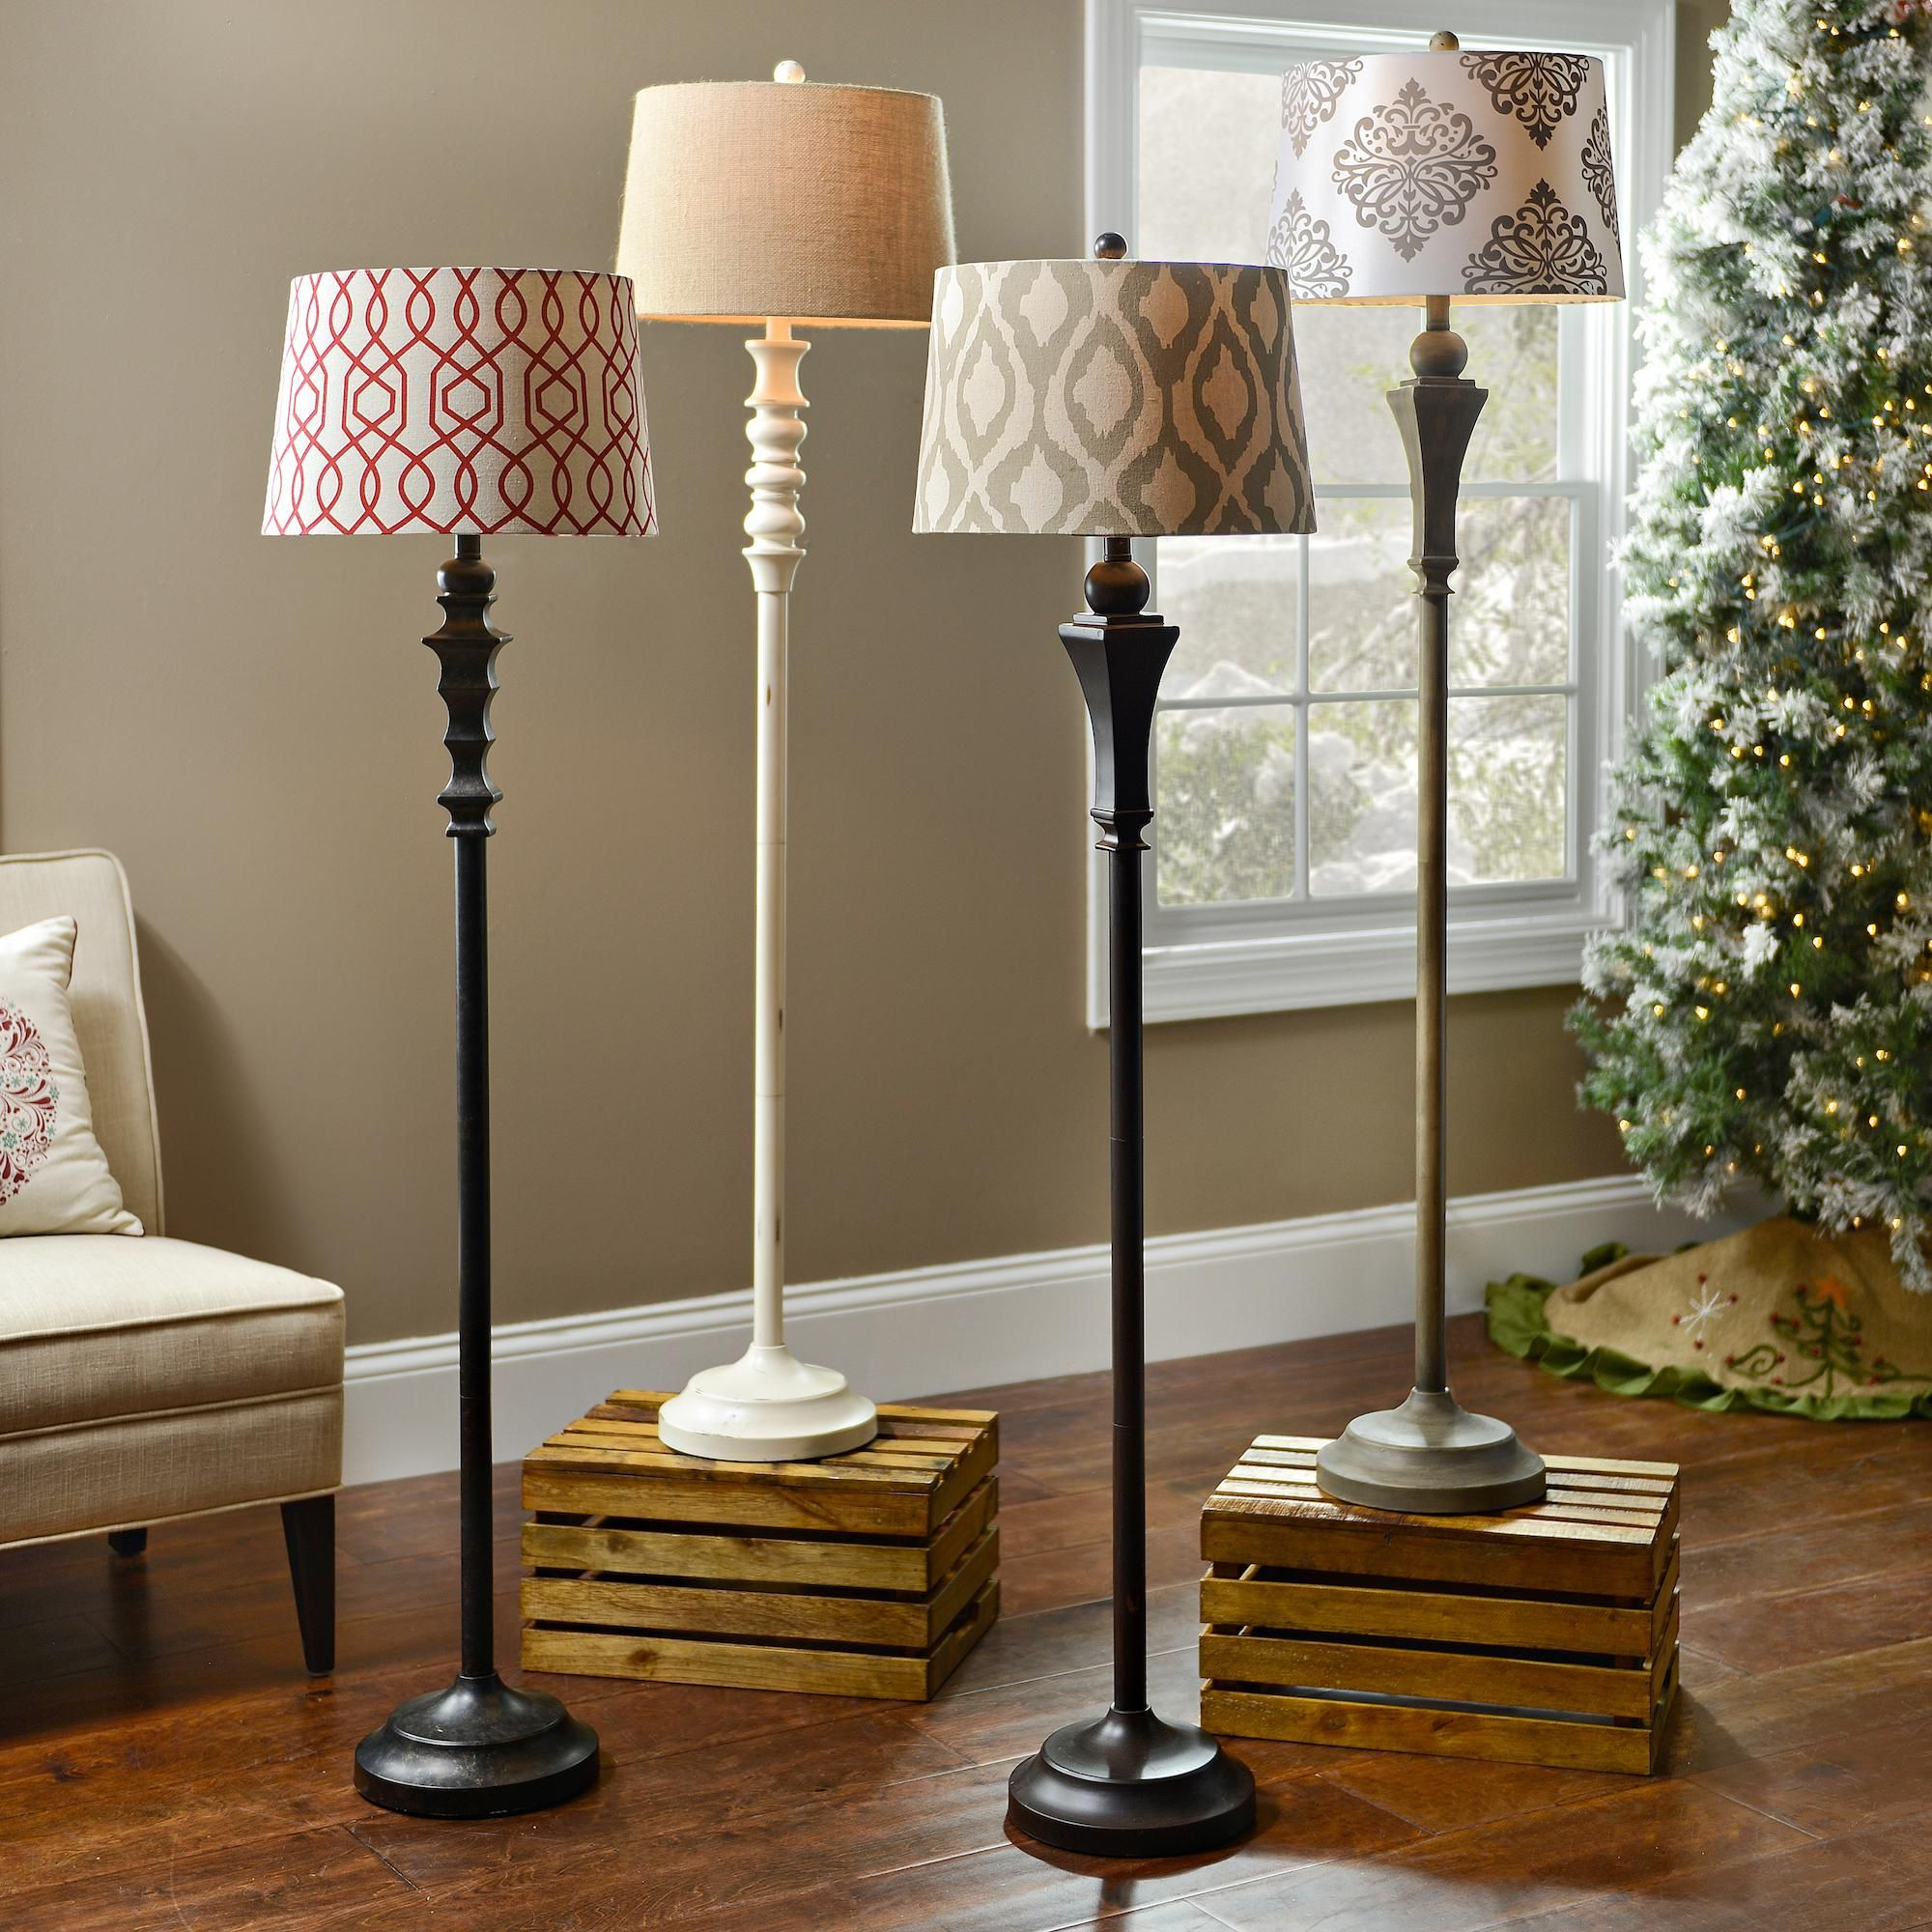 Floor Lamp Kids Room Add Light To A Dim Corner With A Stylish Floor Lamp